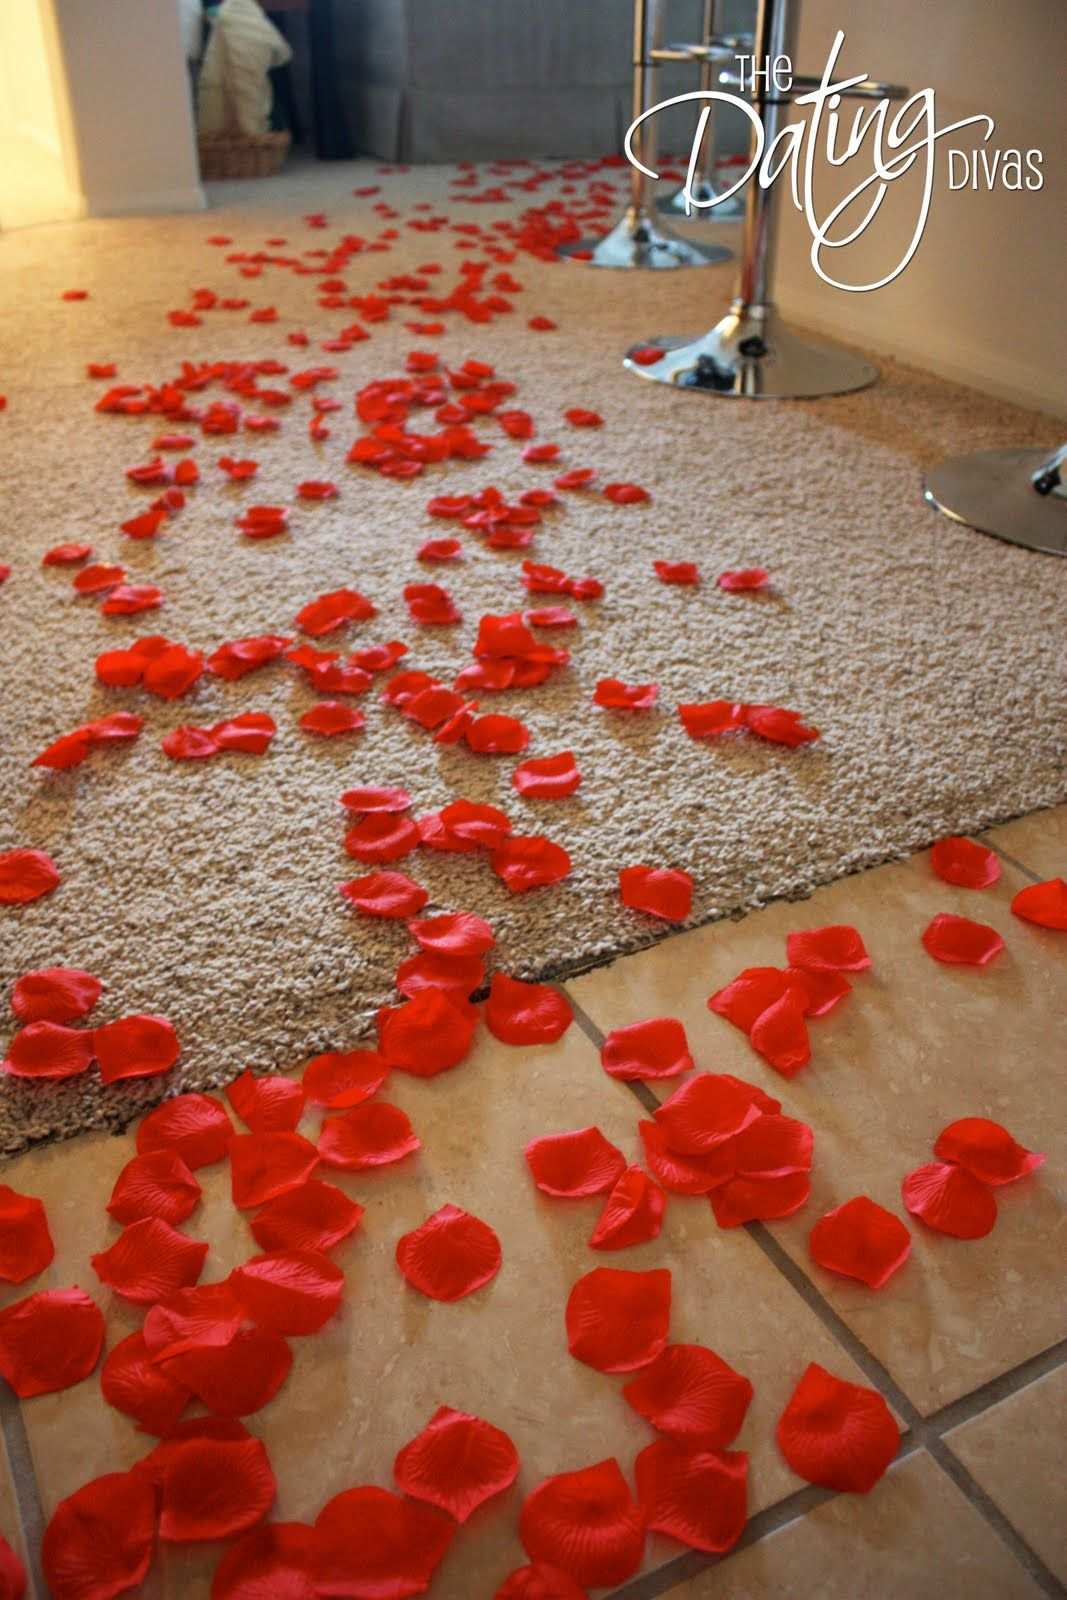 Set The Mood With Rose Petals for Romance with your Spouse ...